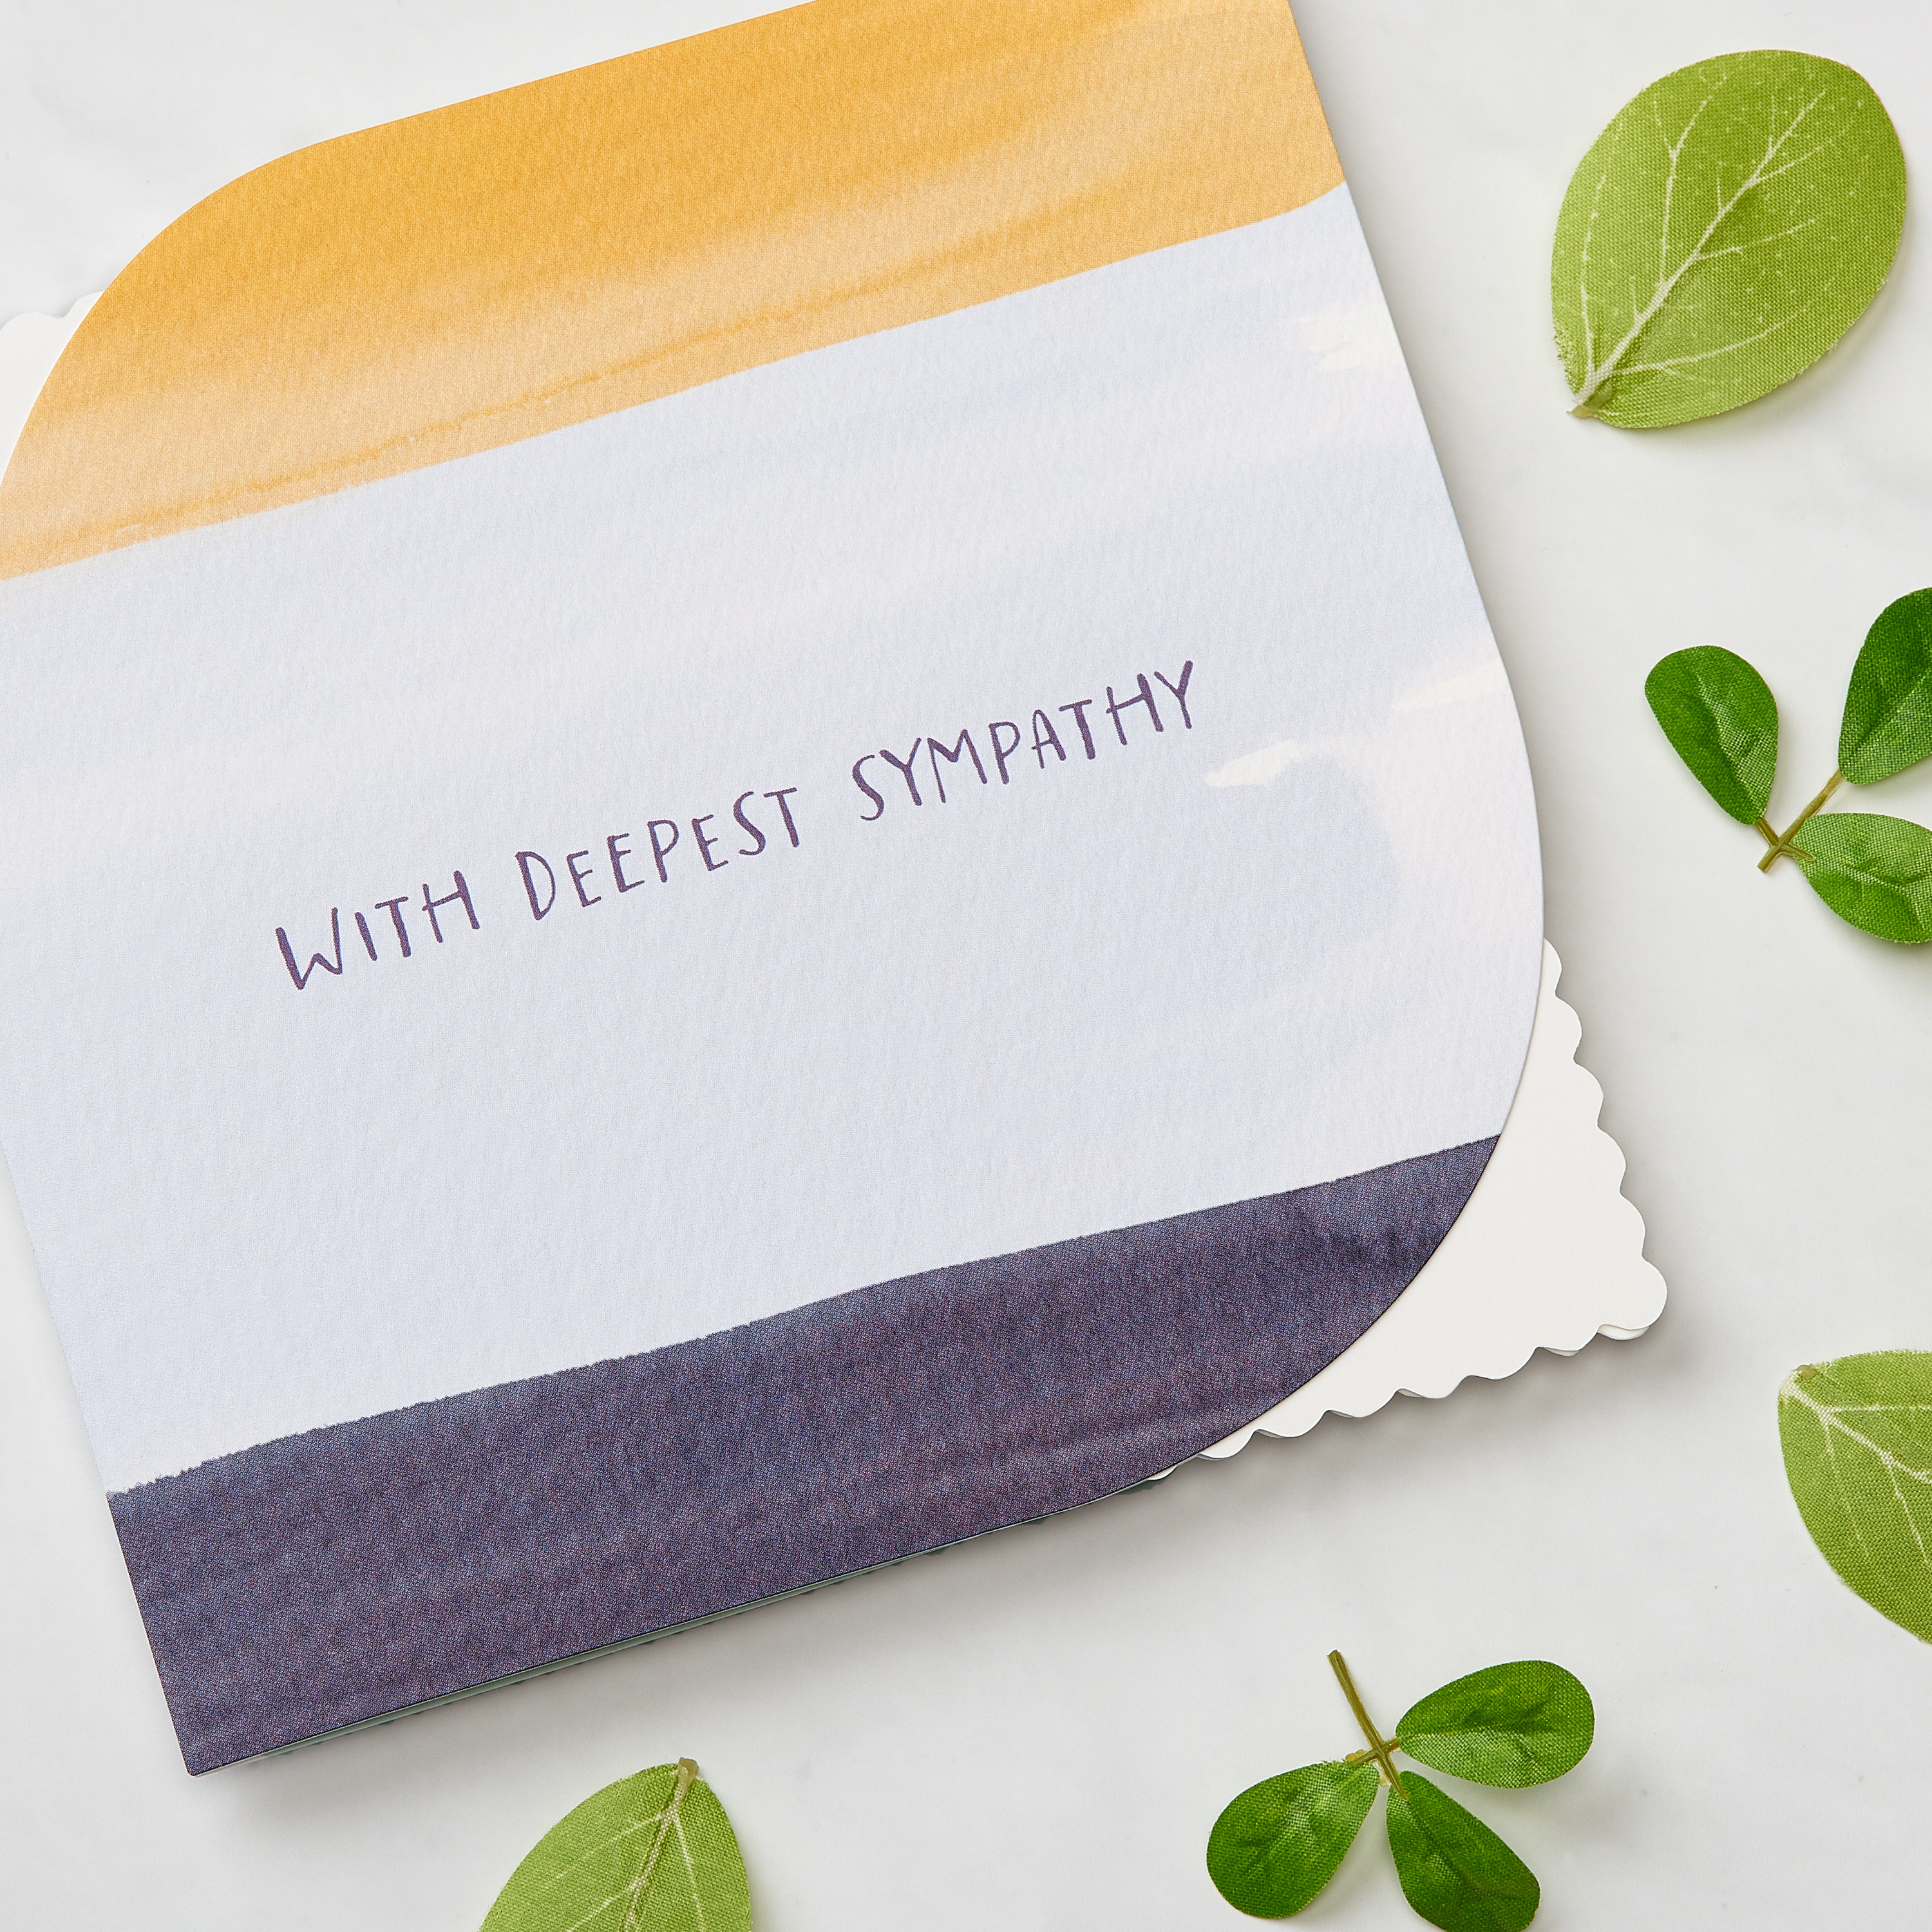 Deepest Sympathy Greeting Card image